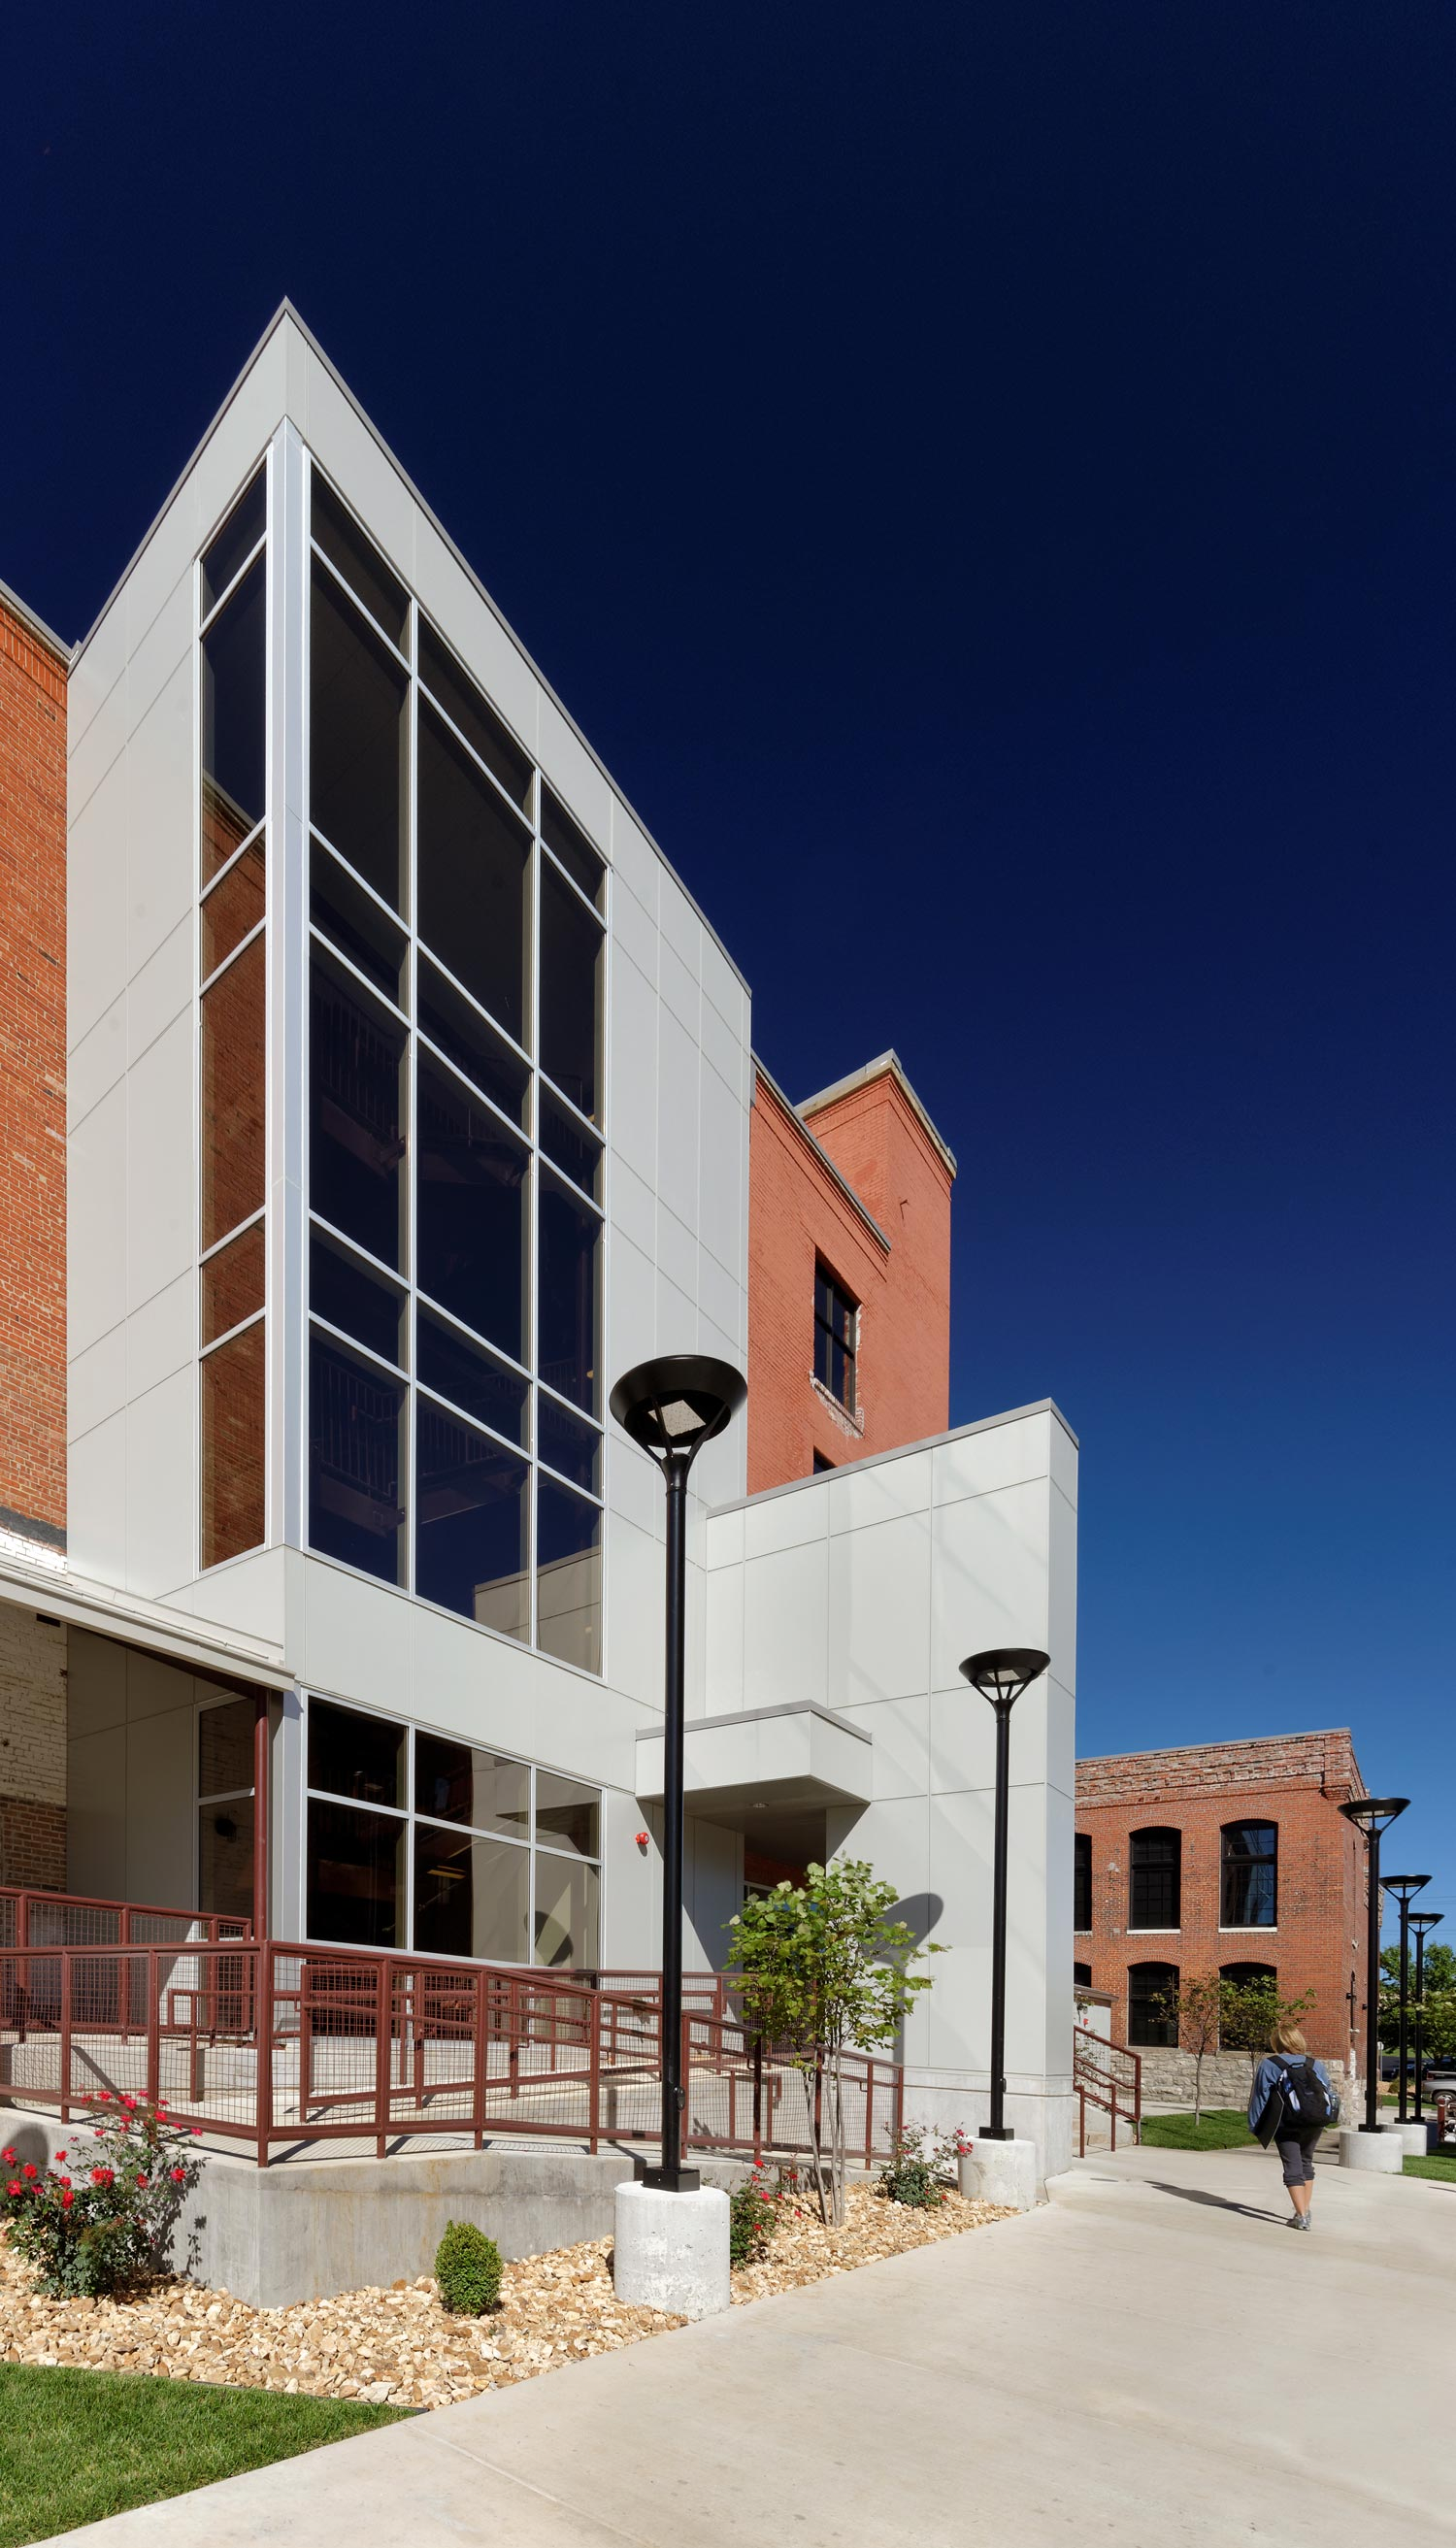 Missouri-State-University-Brick-City-H-Design-Exterior-03.jpg